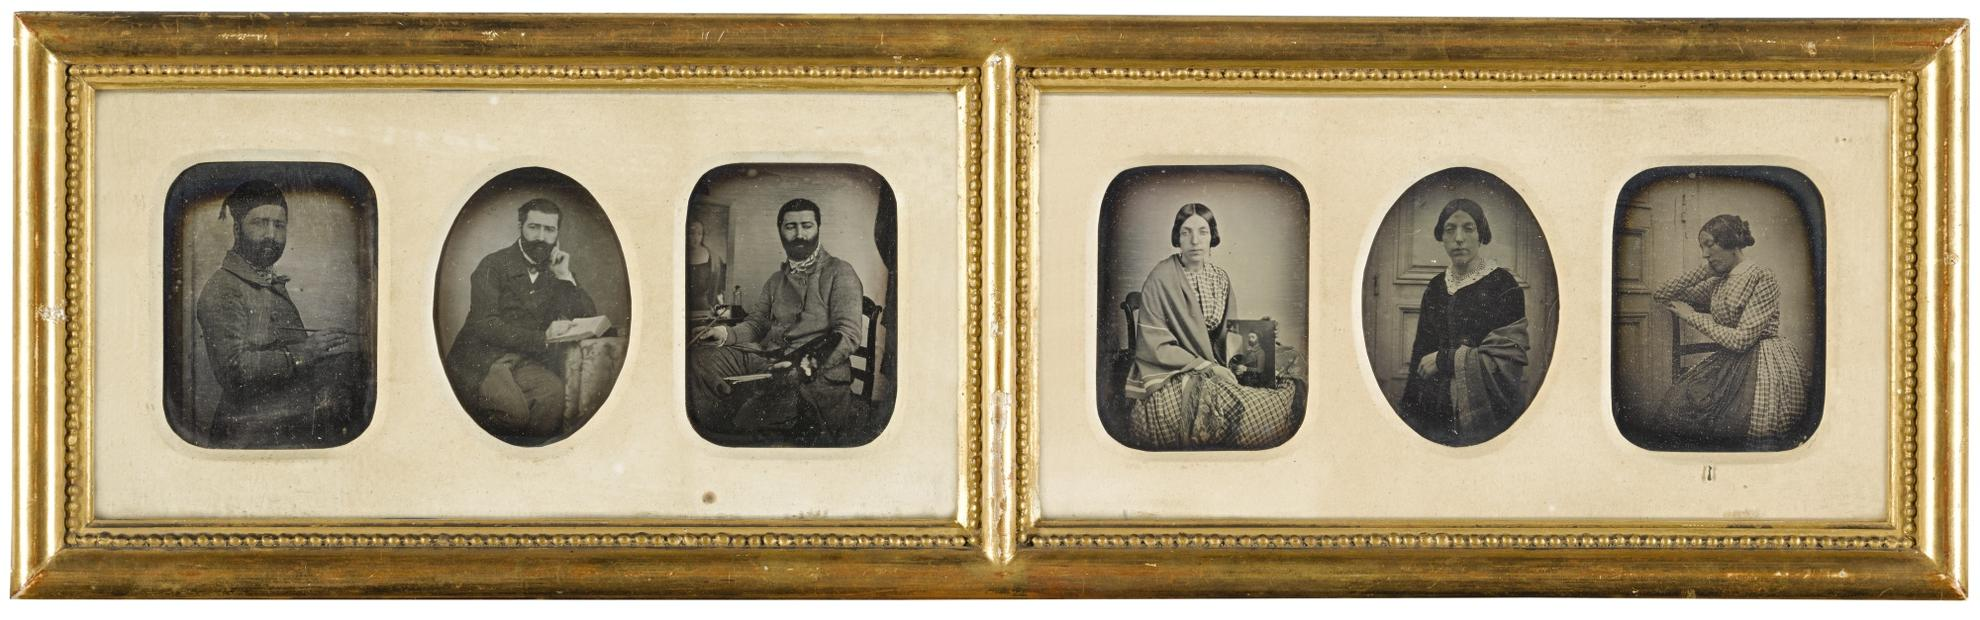 Anonymous French Photographer - The Artist And His Wife: A Narrative Portrait-1849